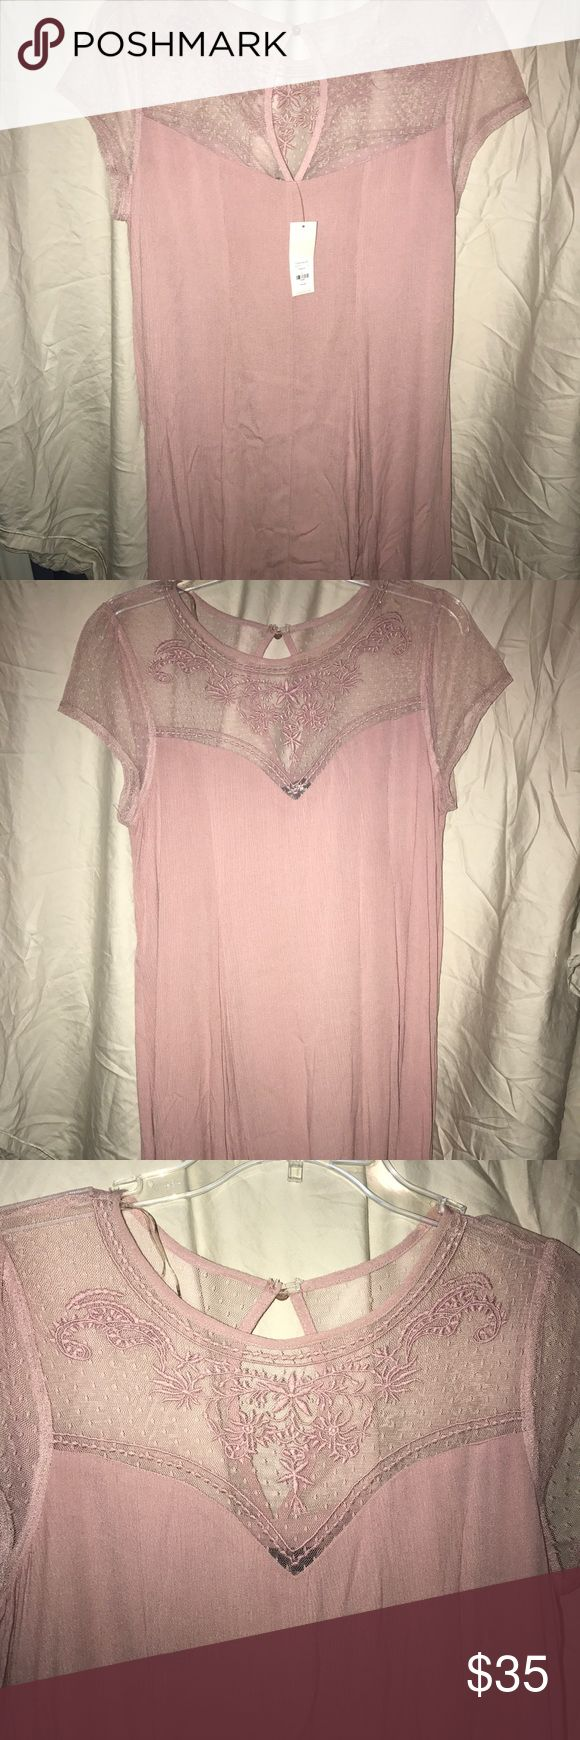 Blush pink flowy dress Brand new! With tags. Never worn, bought a couple weeks ago and never worn. This dress is super cute and would go well with a variety of styles! I paid full price and am open to offers(: Dresses